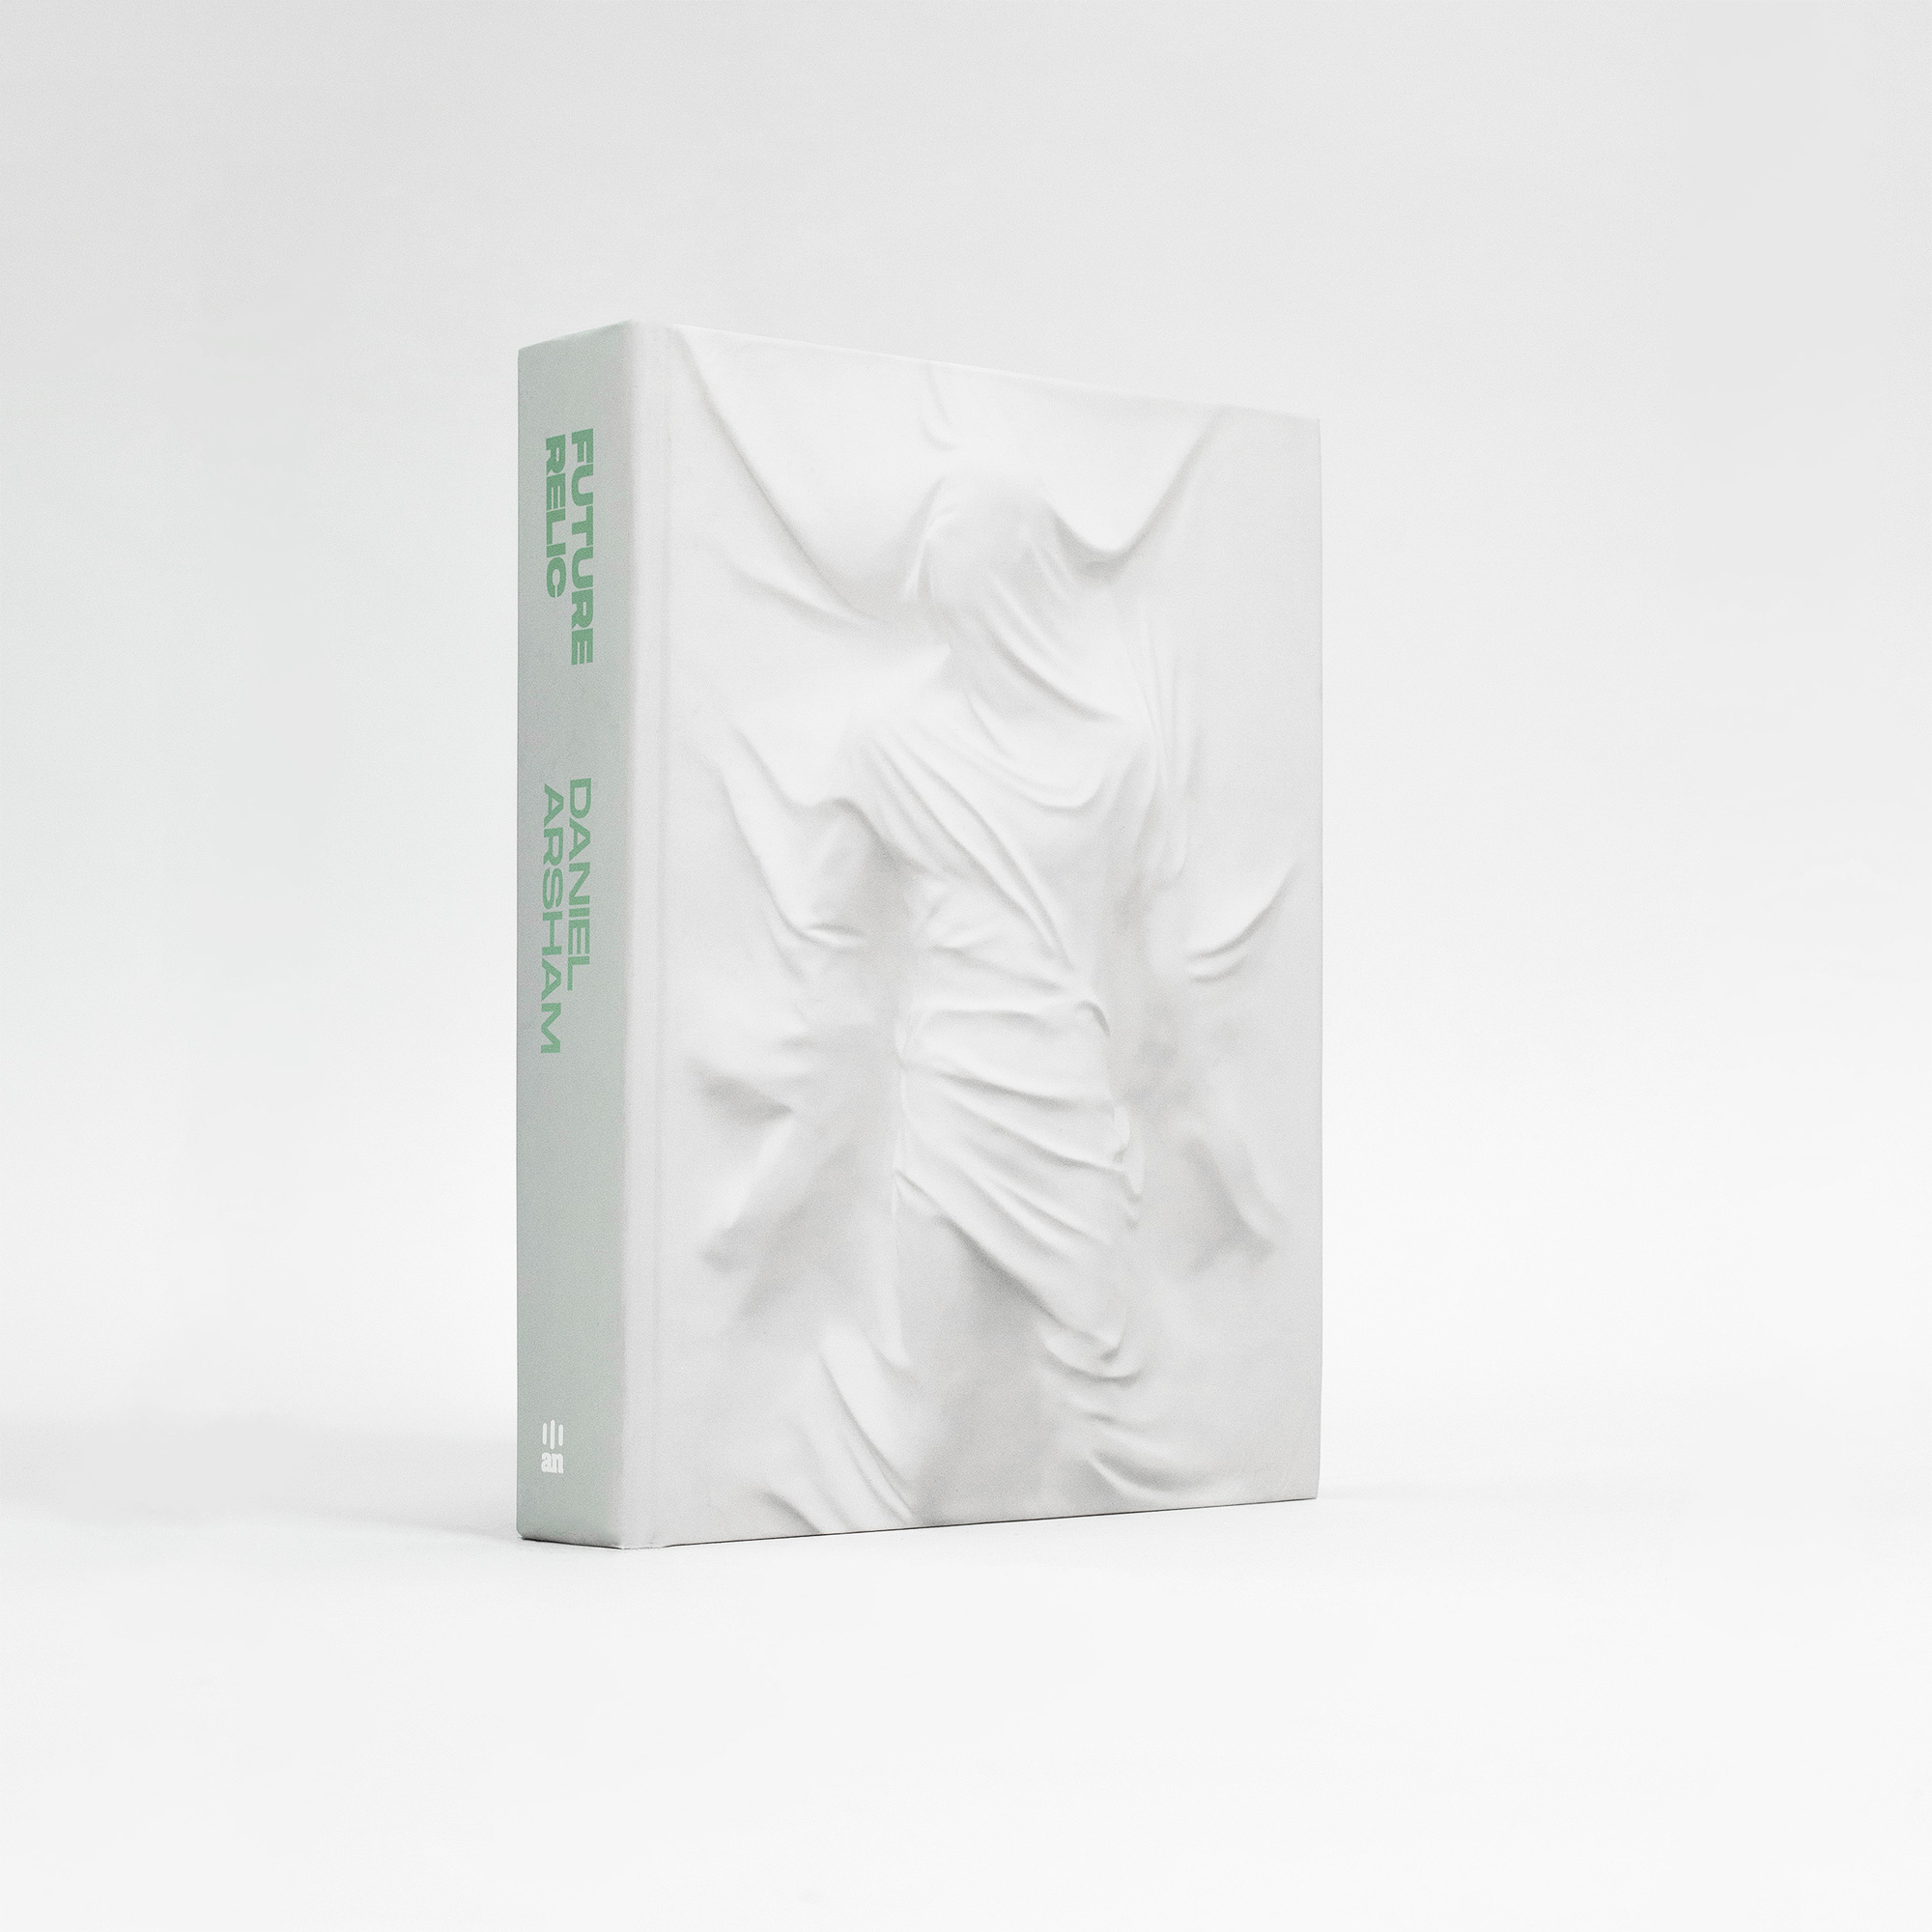 Future Relic by Daniel Arsham book cover